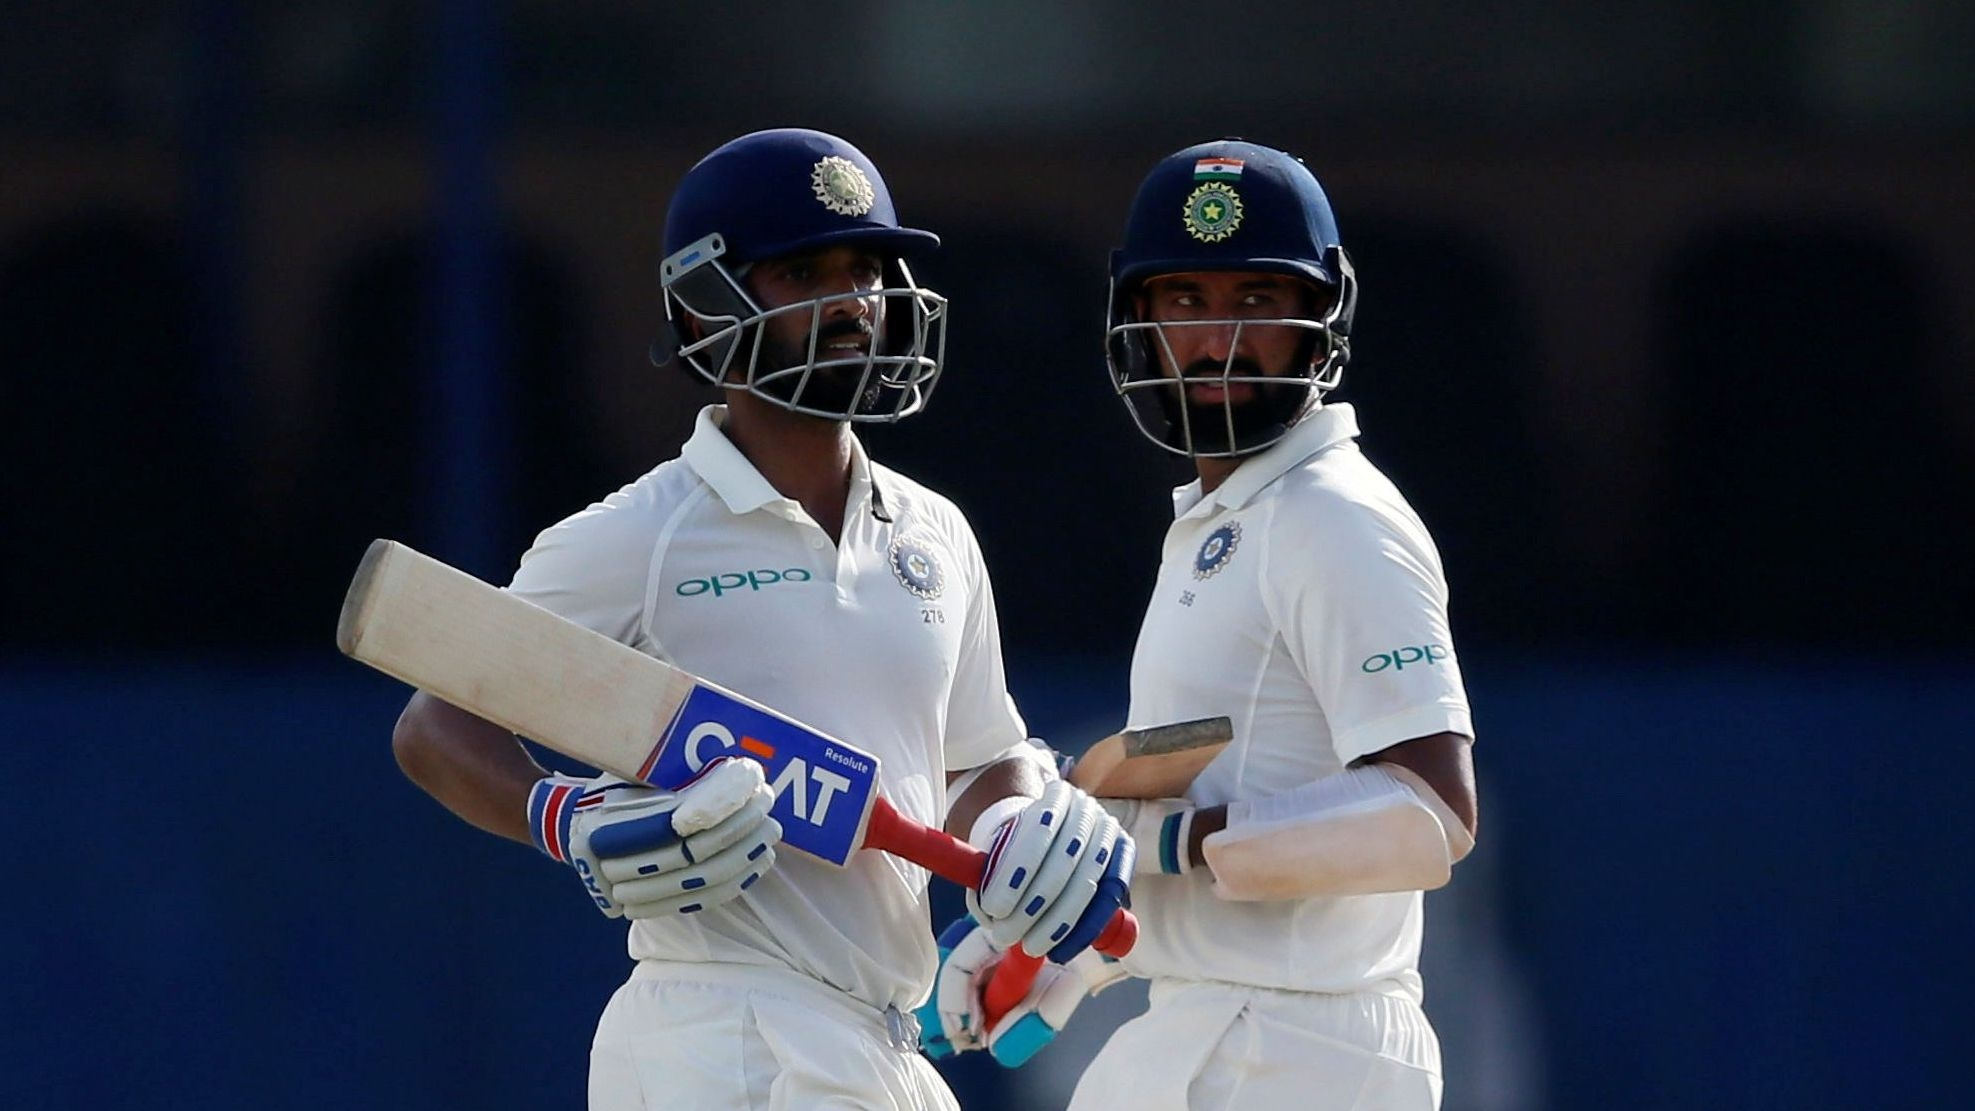 Contracts of Likes of Pujara & Rahane Can be Re-Looked: Shantha